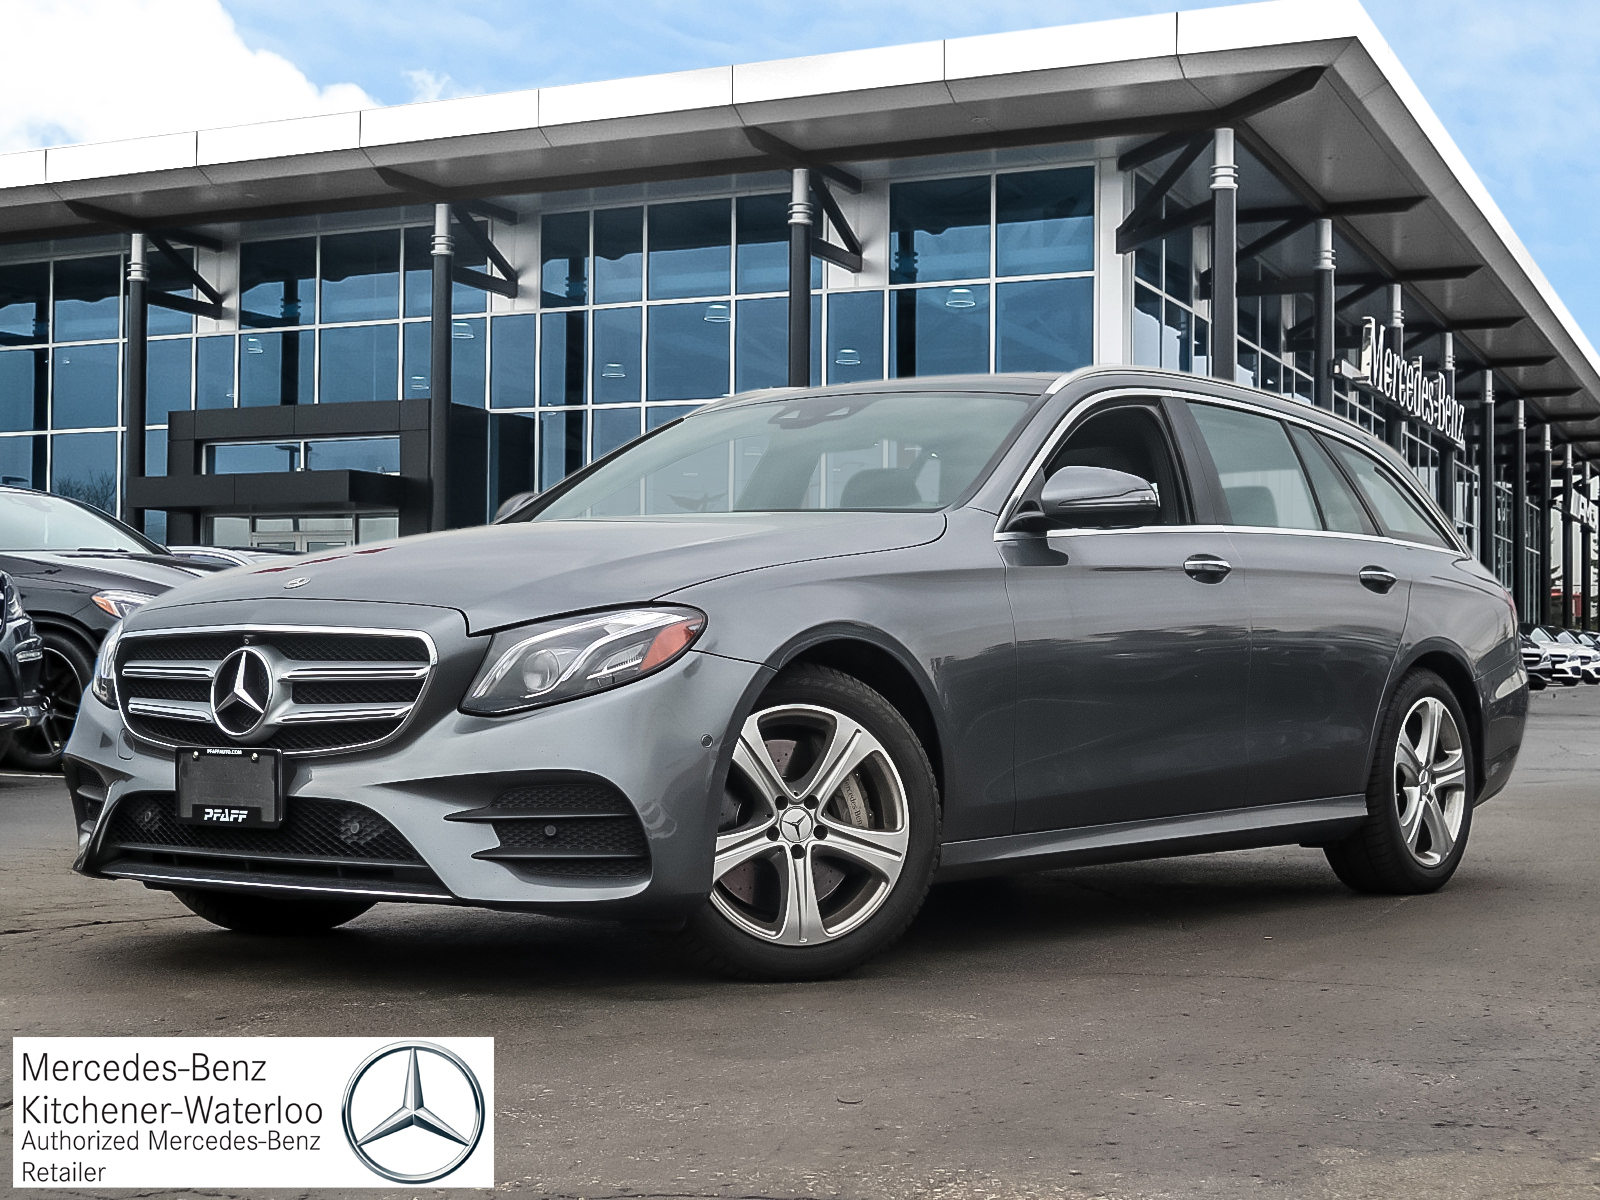 New 2018 Mercedes-Benz E400 4MATIC Wagon